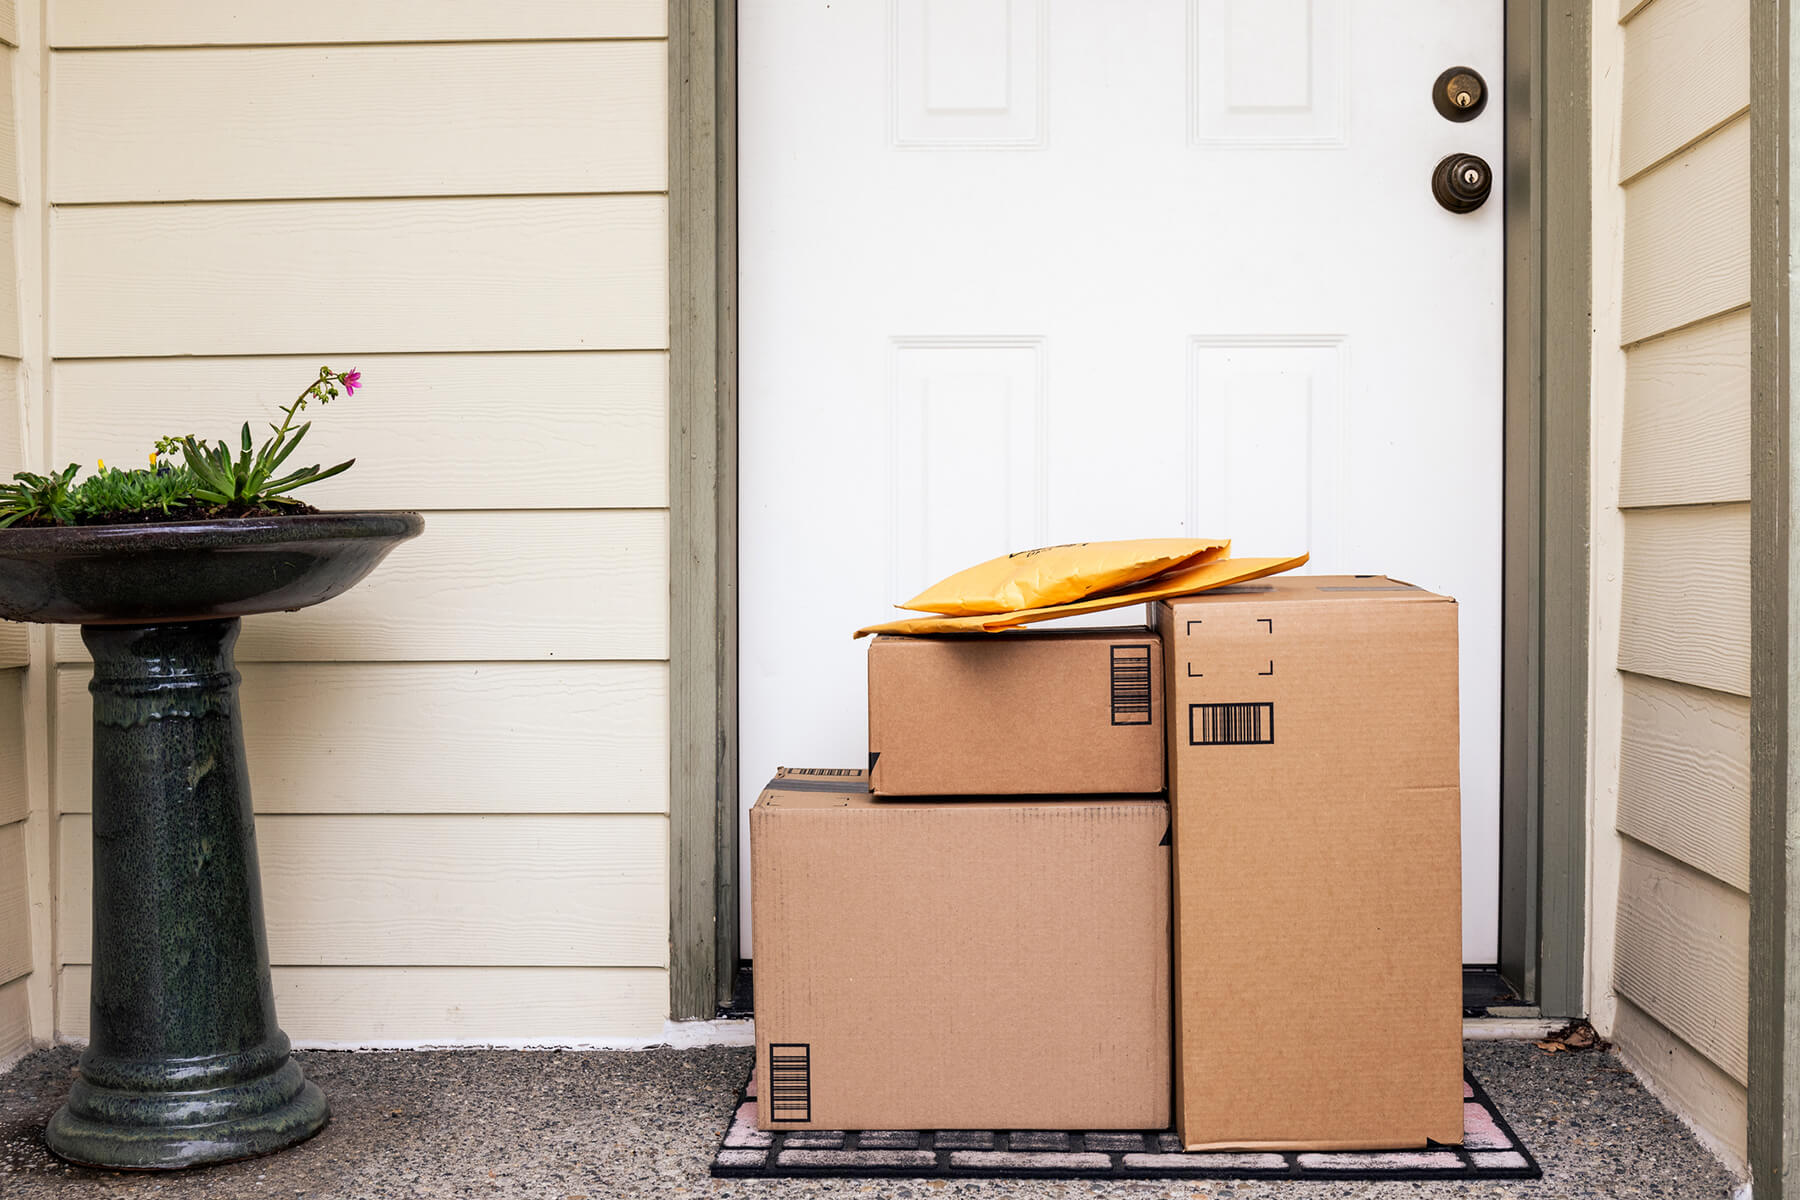 Boxes sitting unattended on a front porch